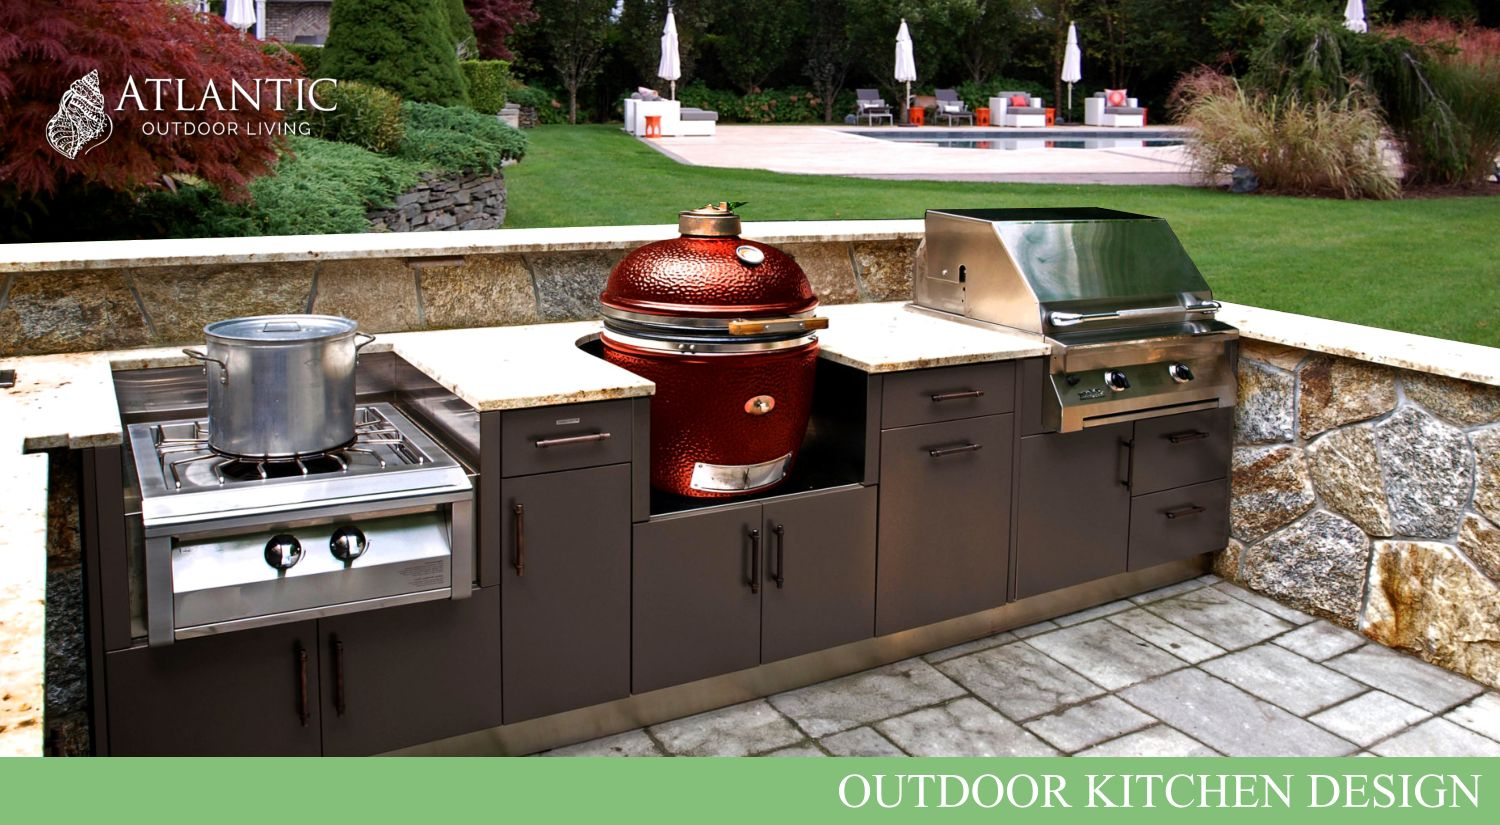 135 Outdoor Kitchen Ideas And Designs For 2019: Outdoor Kitchen Designs With Roofs